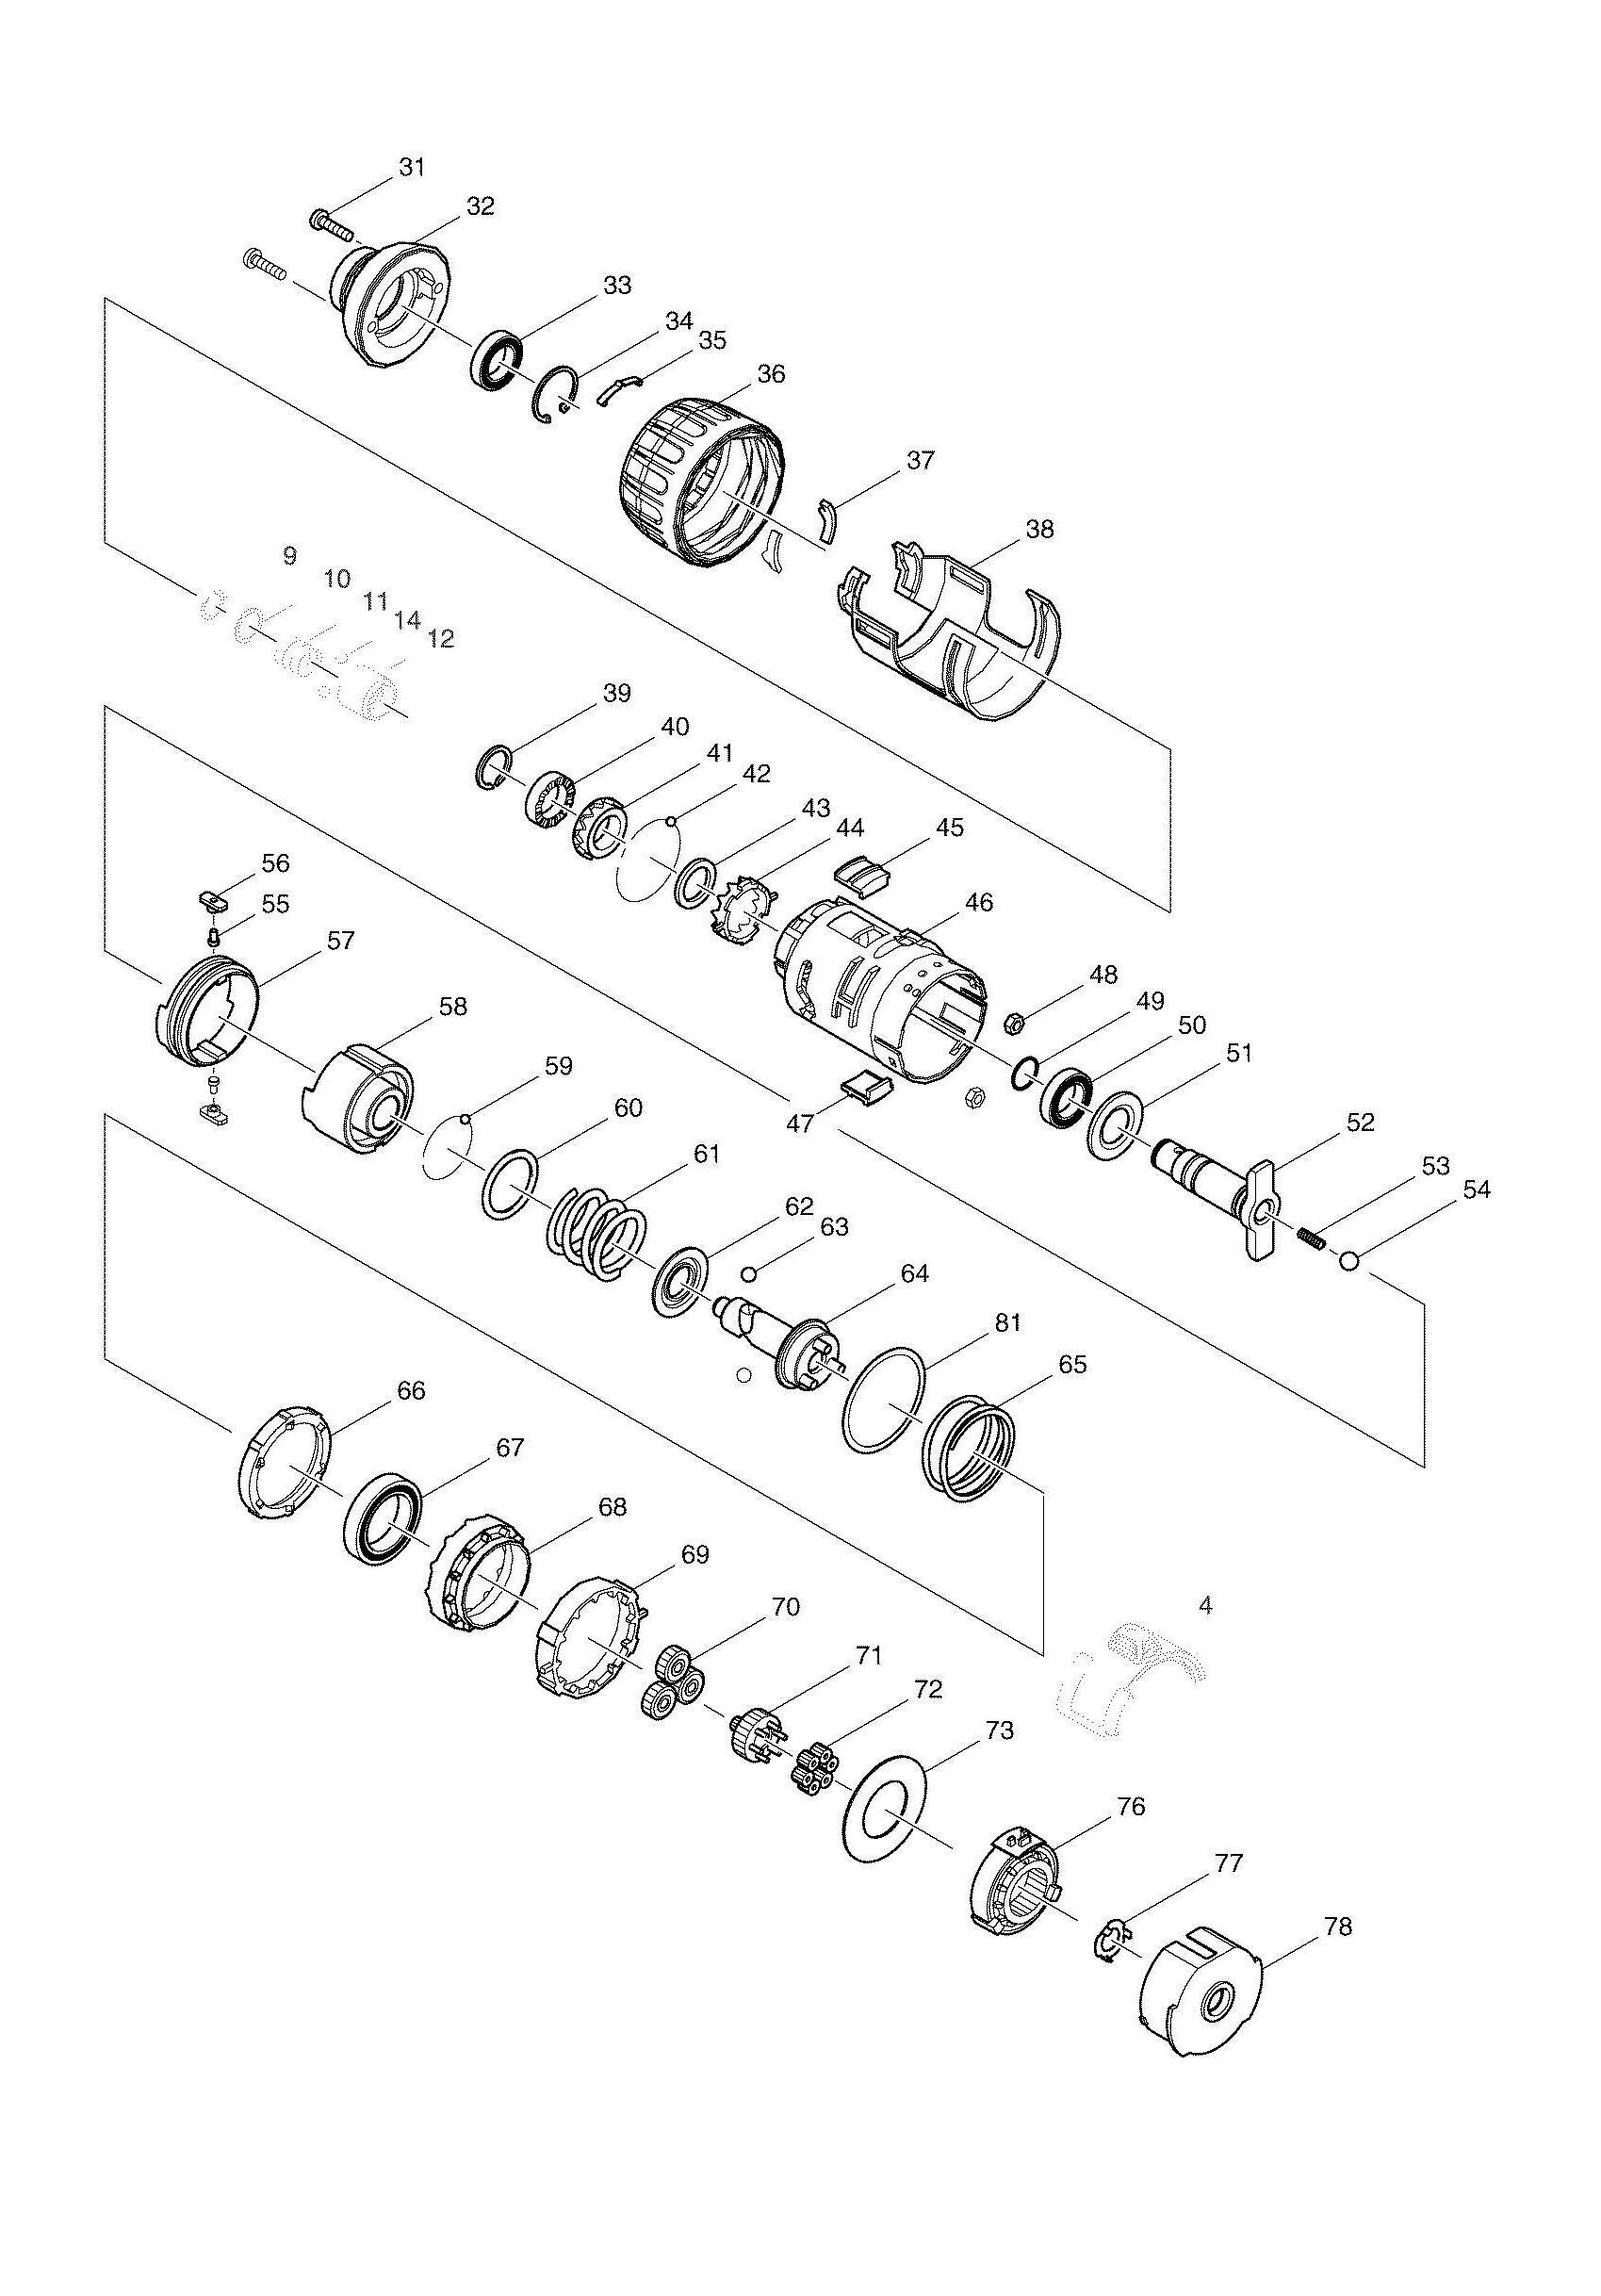 Paslode Schematic Diagrams